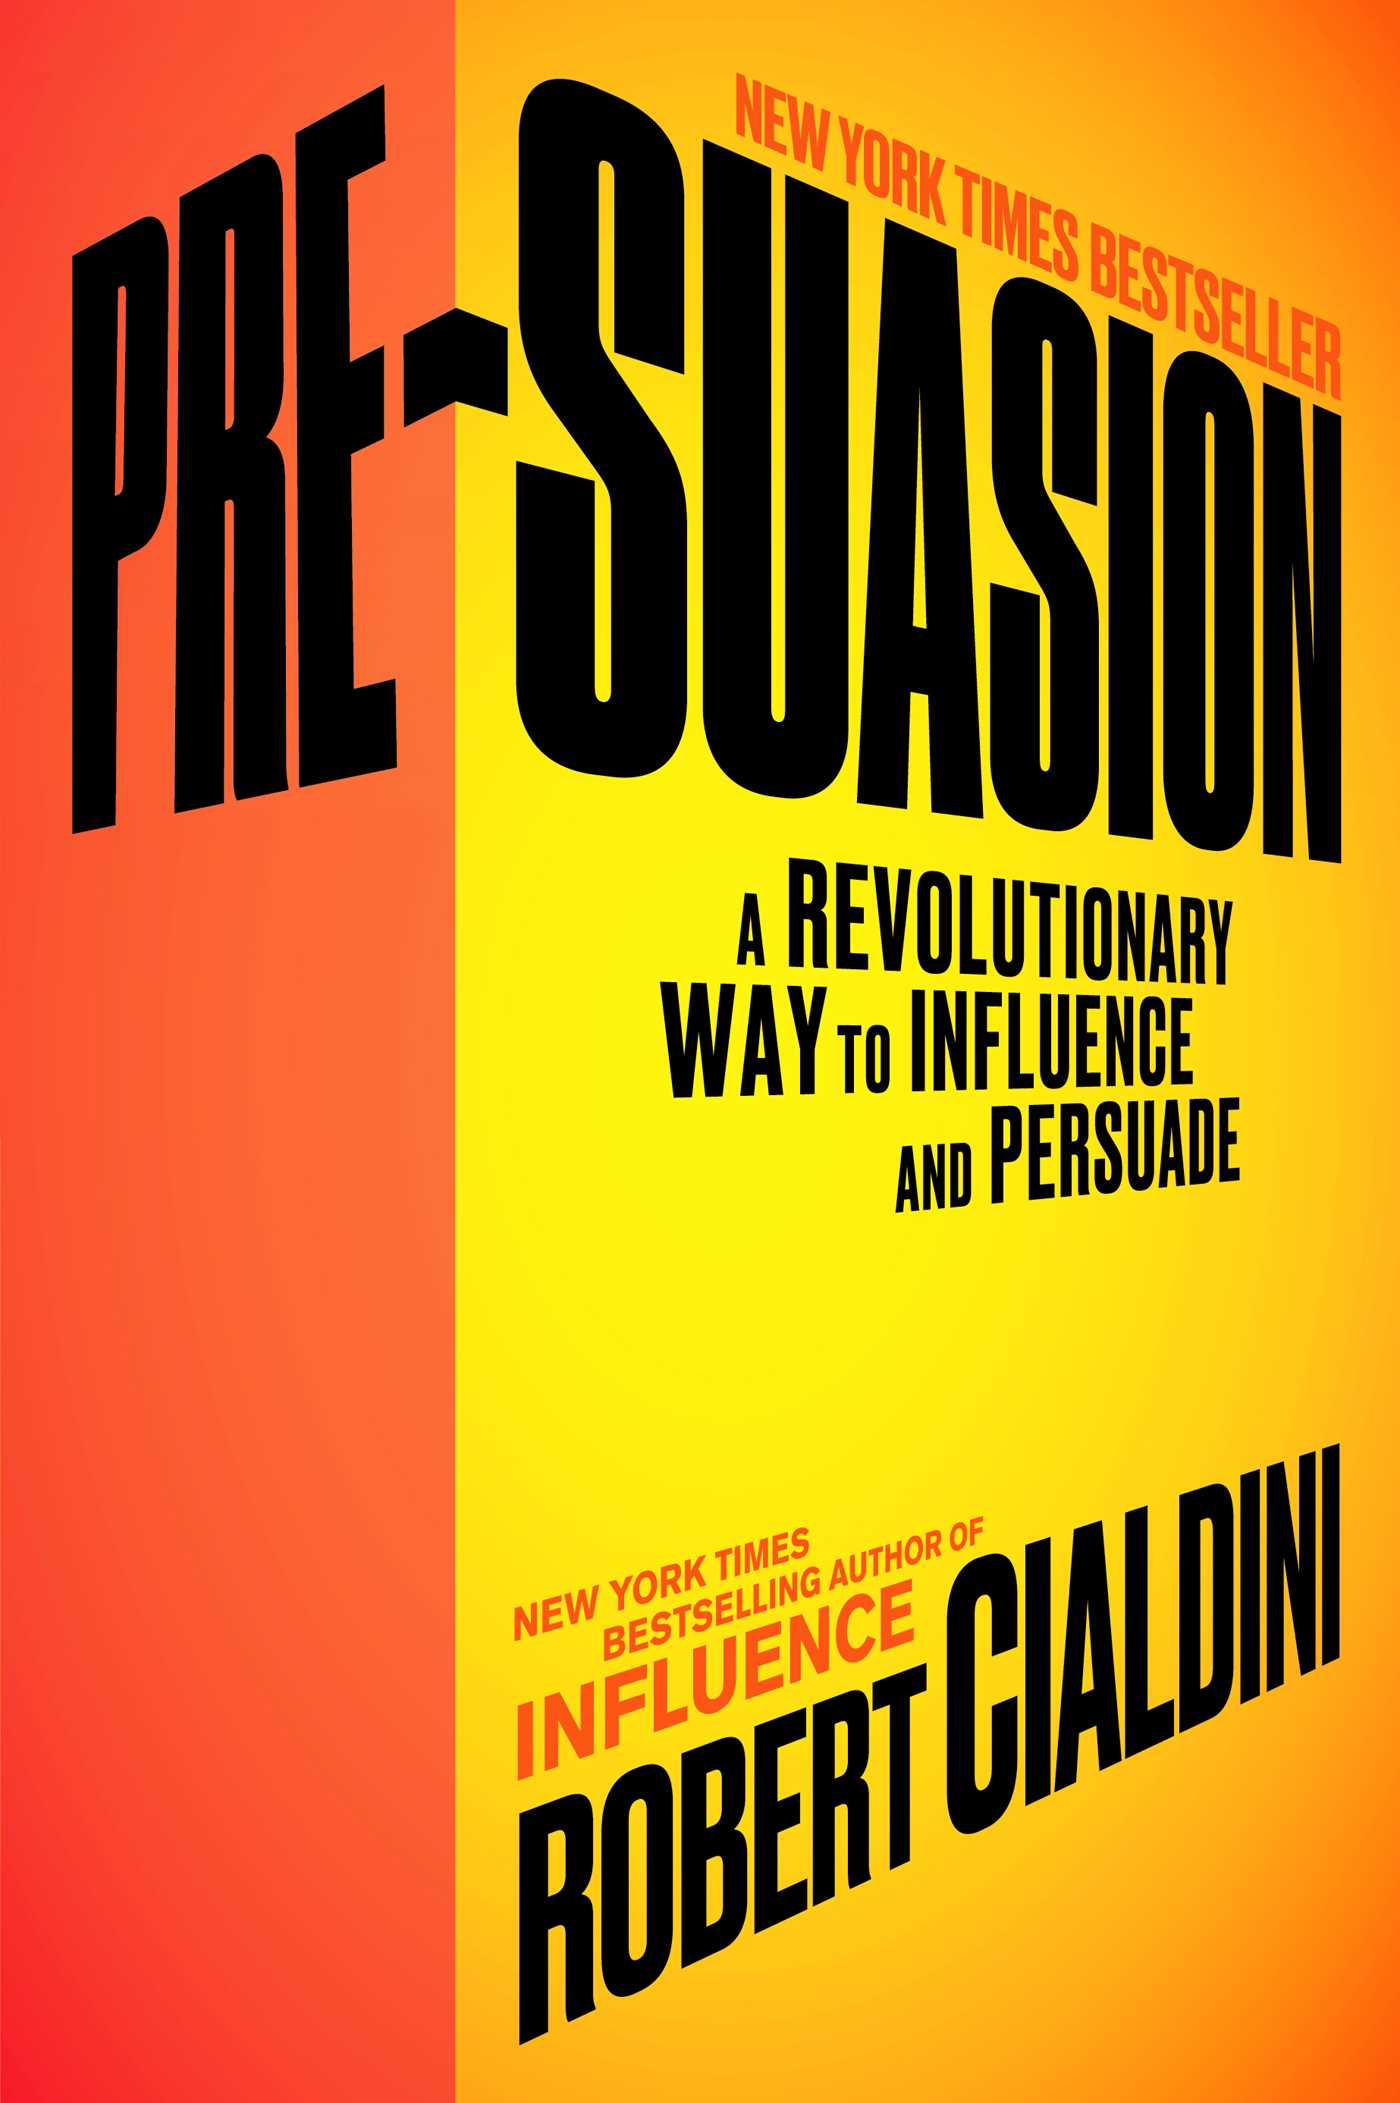 Pre-Suasion | Book by Robert Cialdini | Official Publisher ...